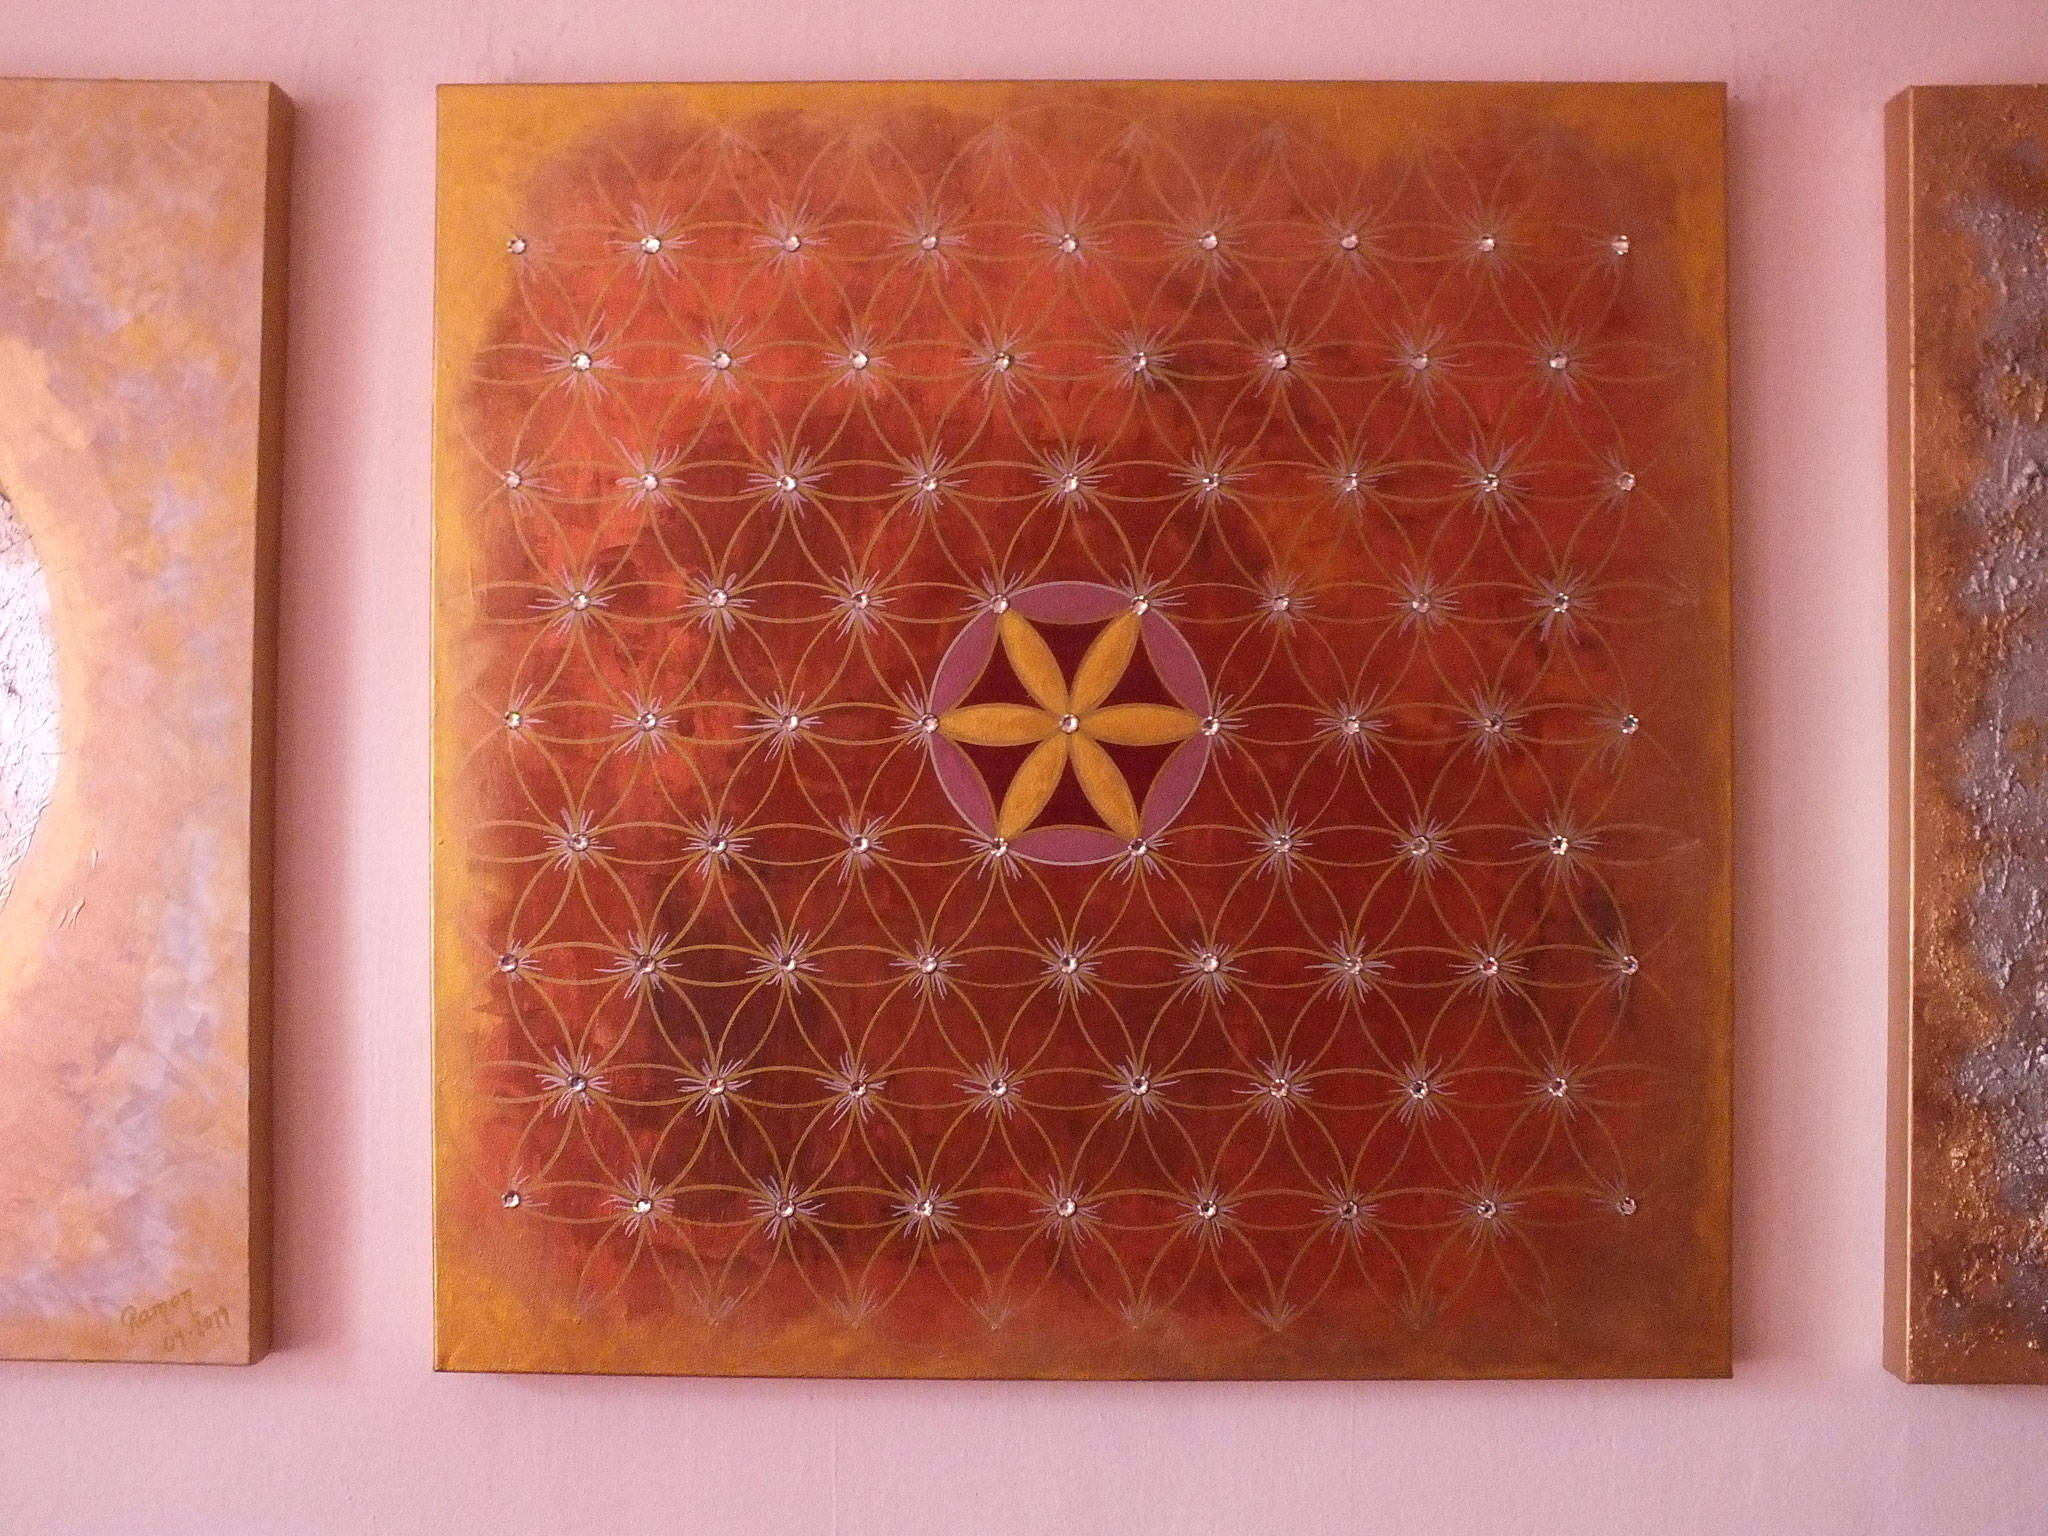 10. Endless Flower of Life